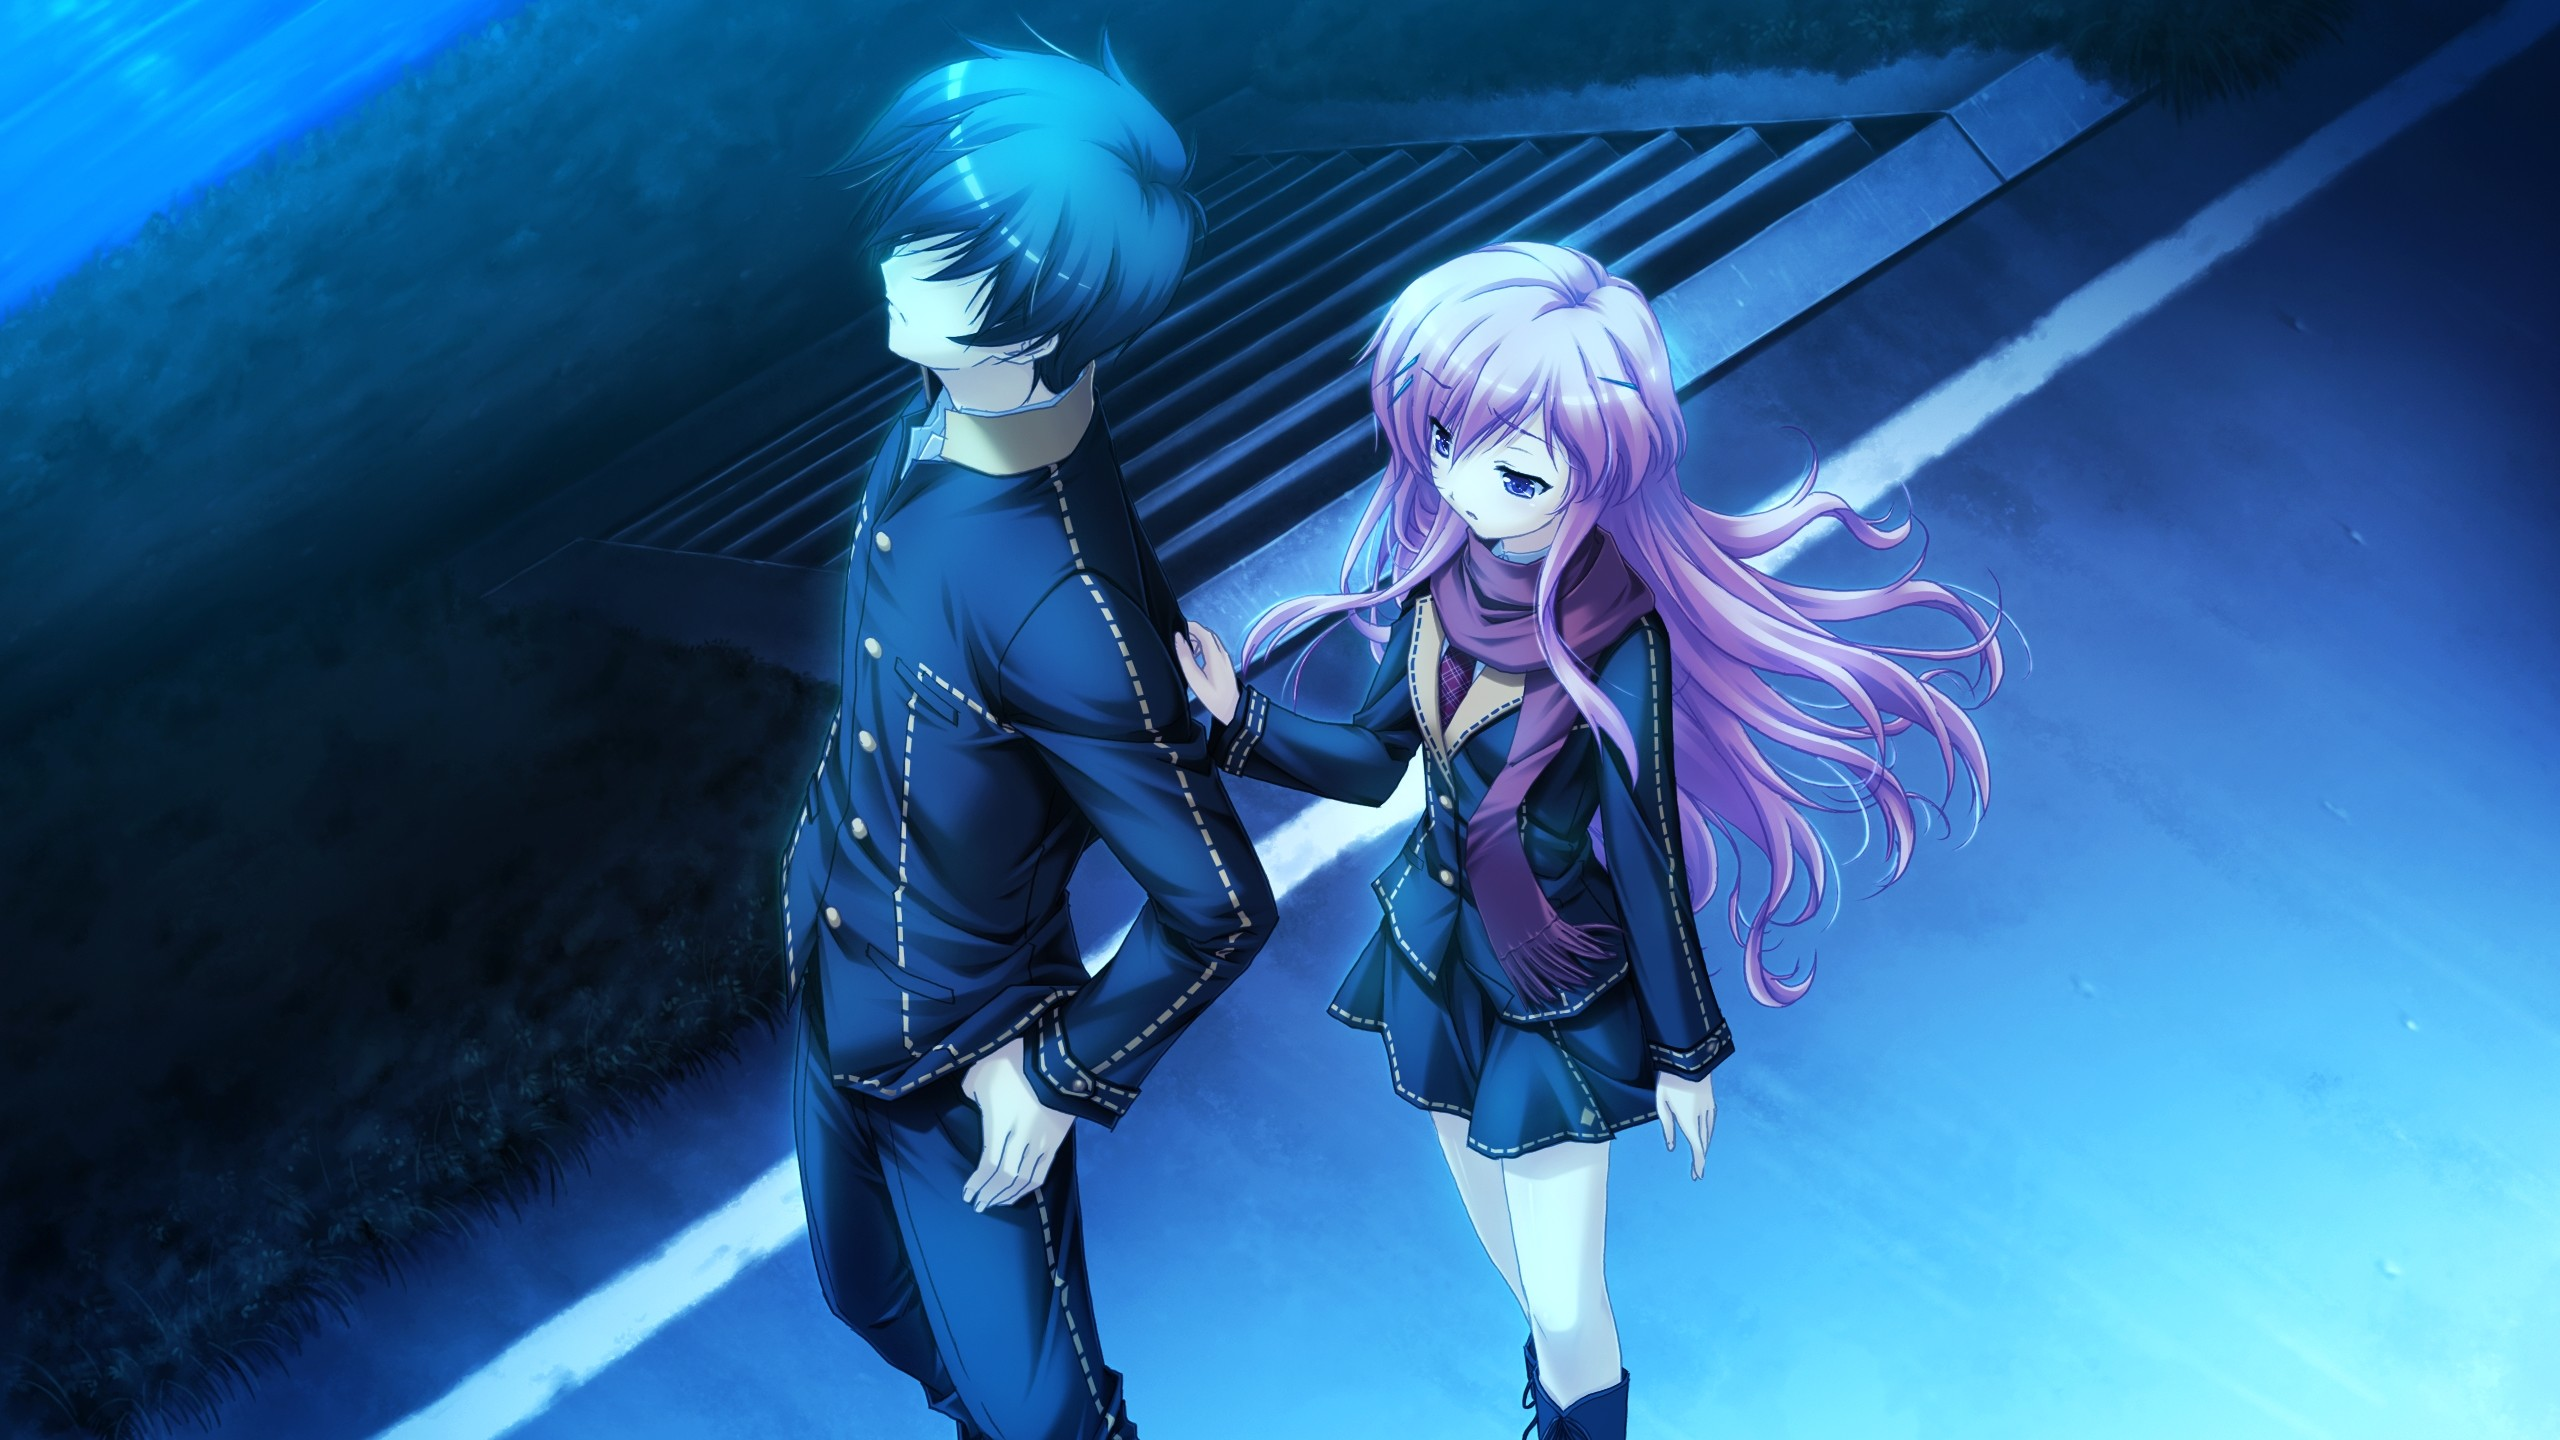 2560x1440 Wallpaper Anime, Boy, Girl, Touching, Twilight